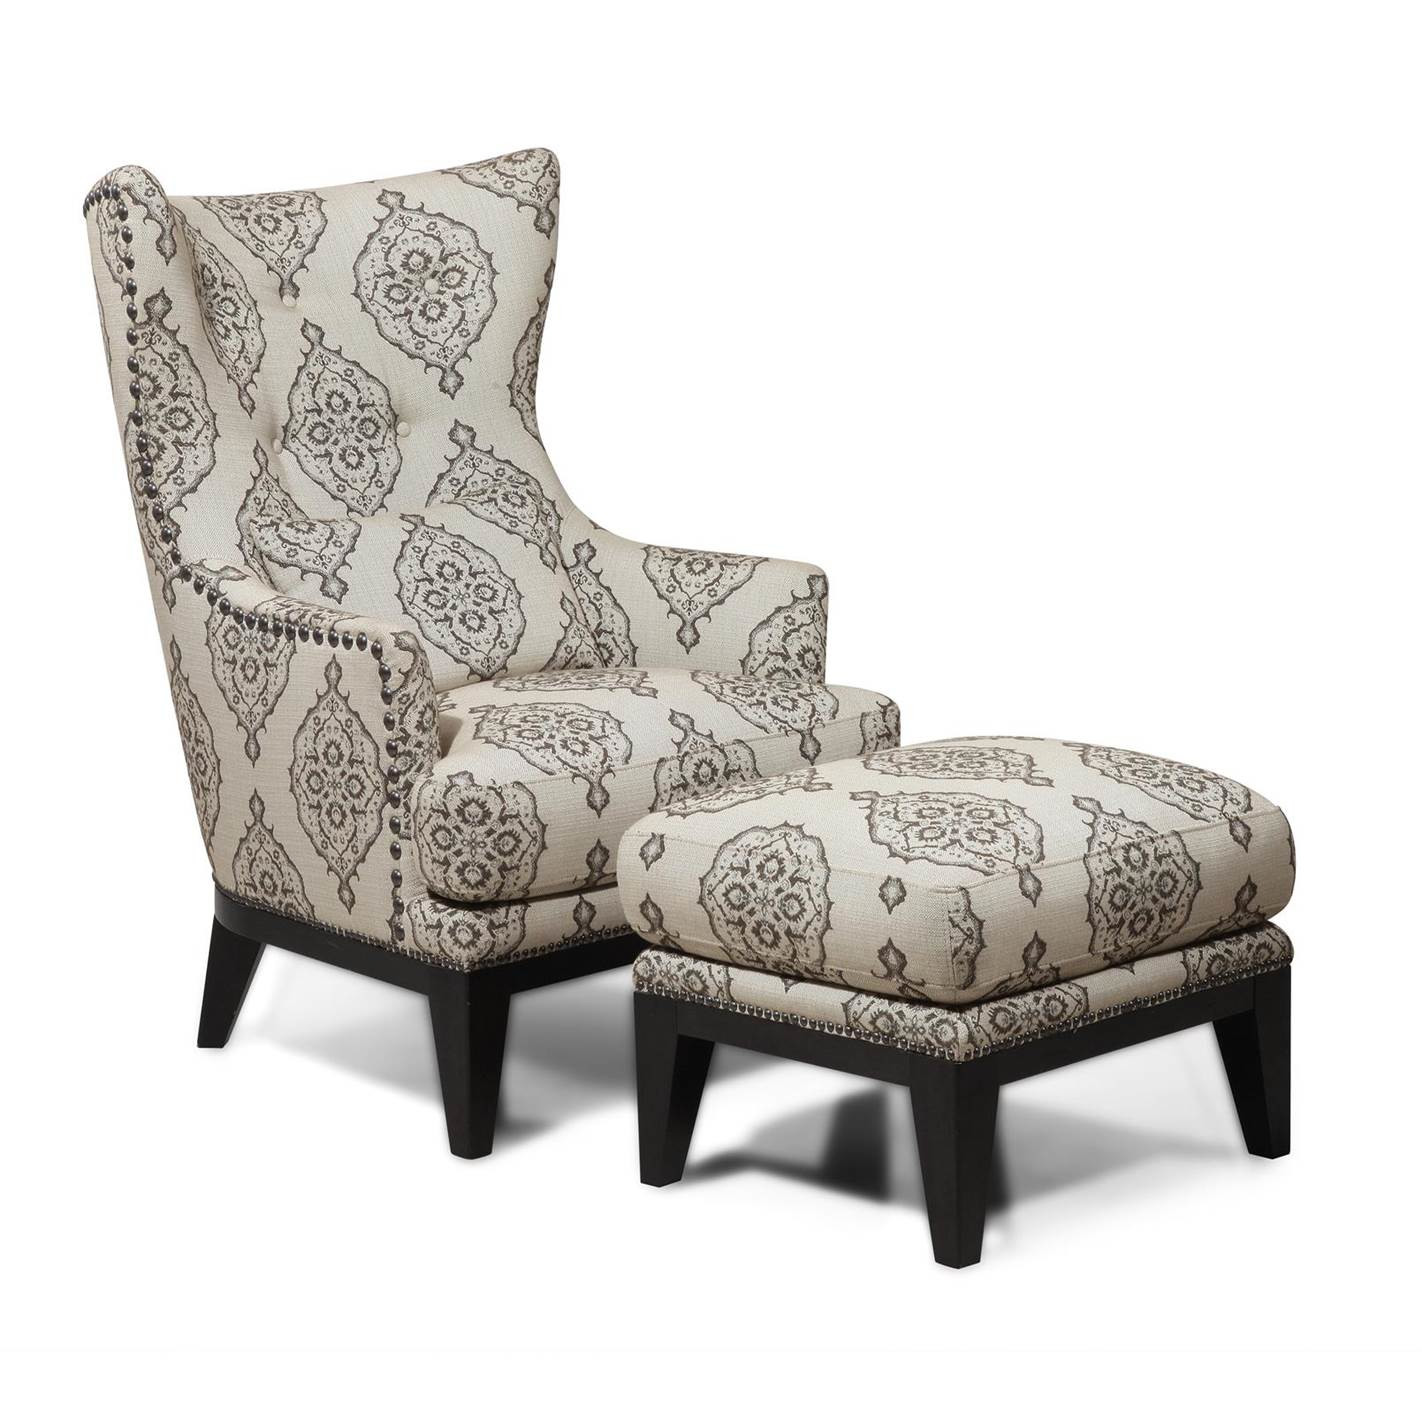 Dining Room: Attractive Wing Back Chair With Solid Strong Wood ...